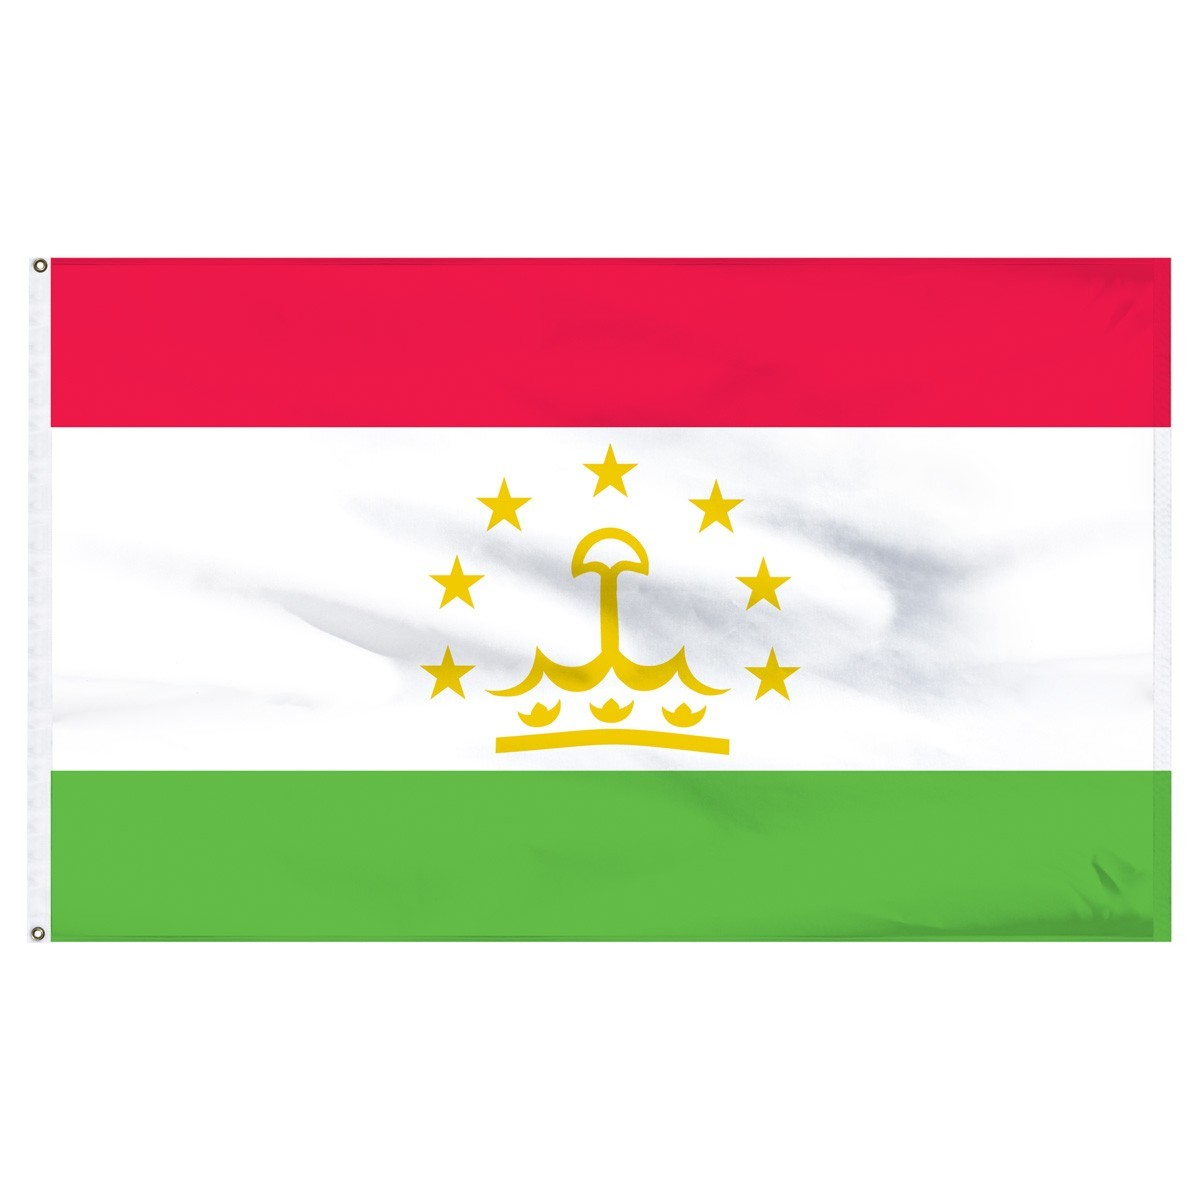 Tajikistan 2' x 3' Outdoor Nylon Flag